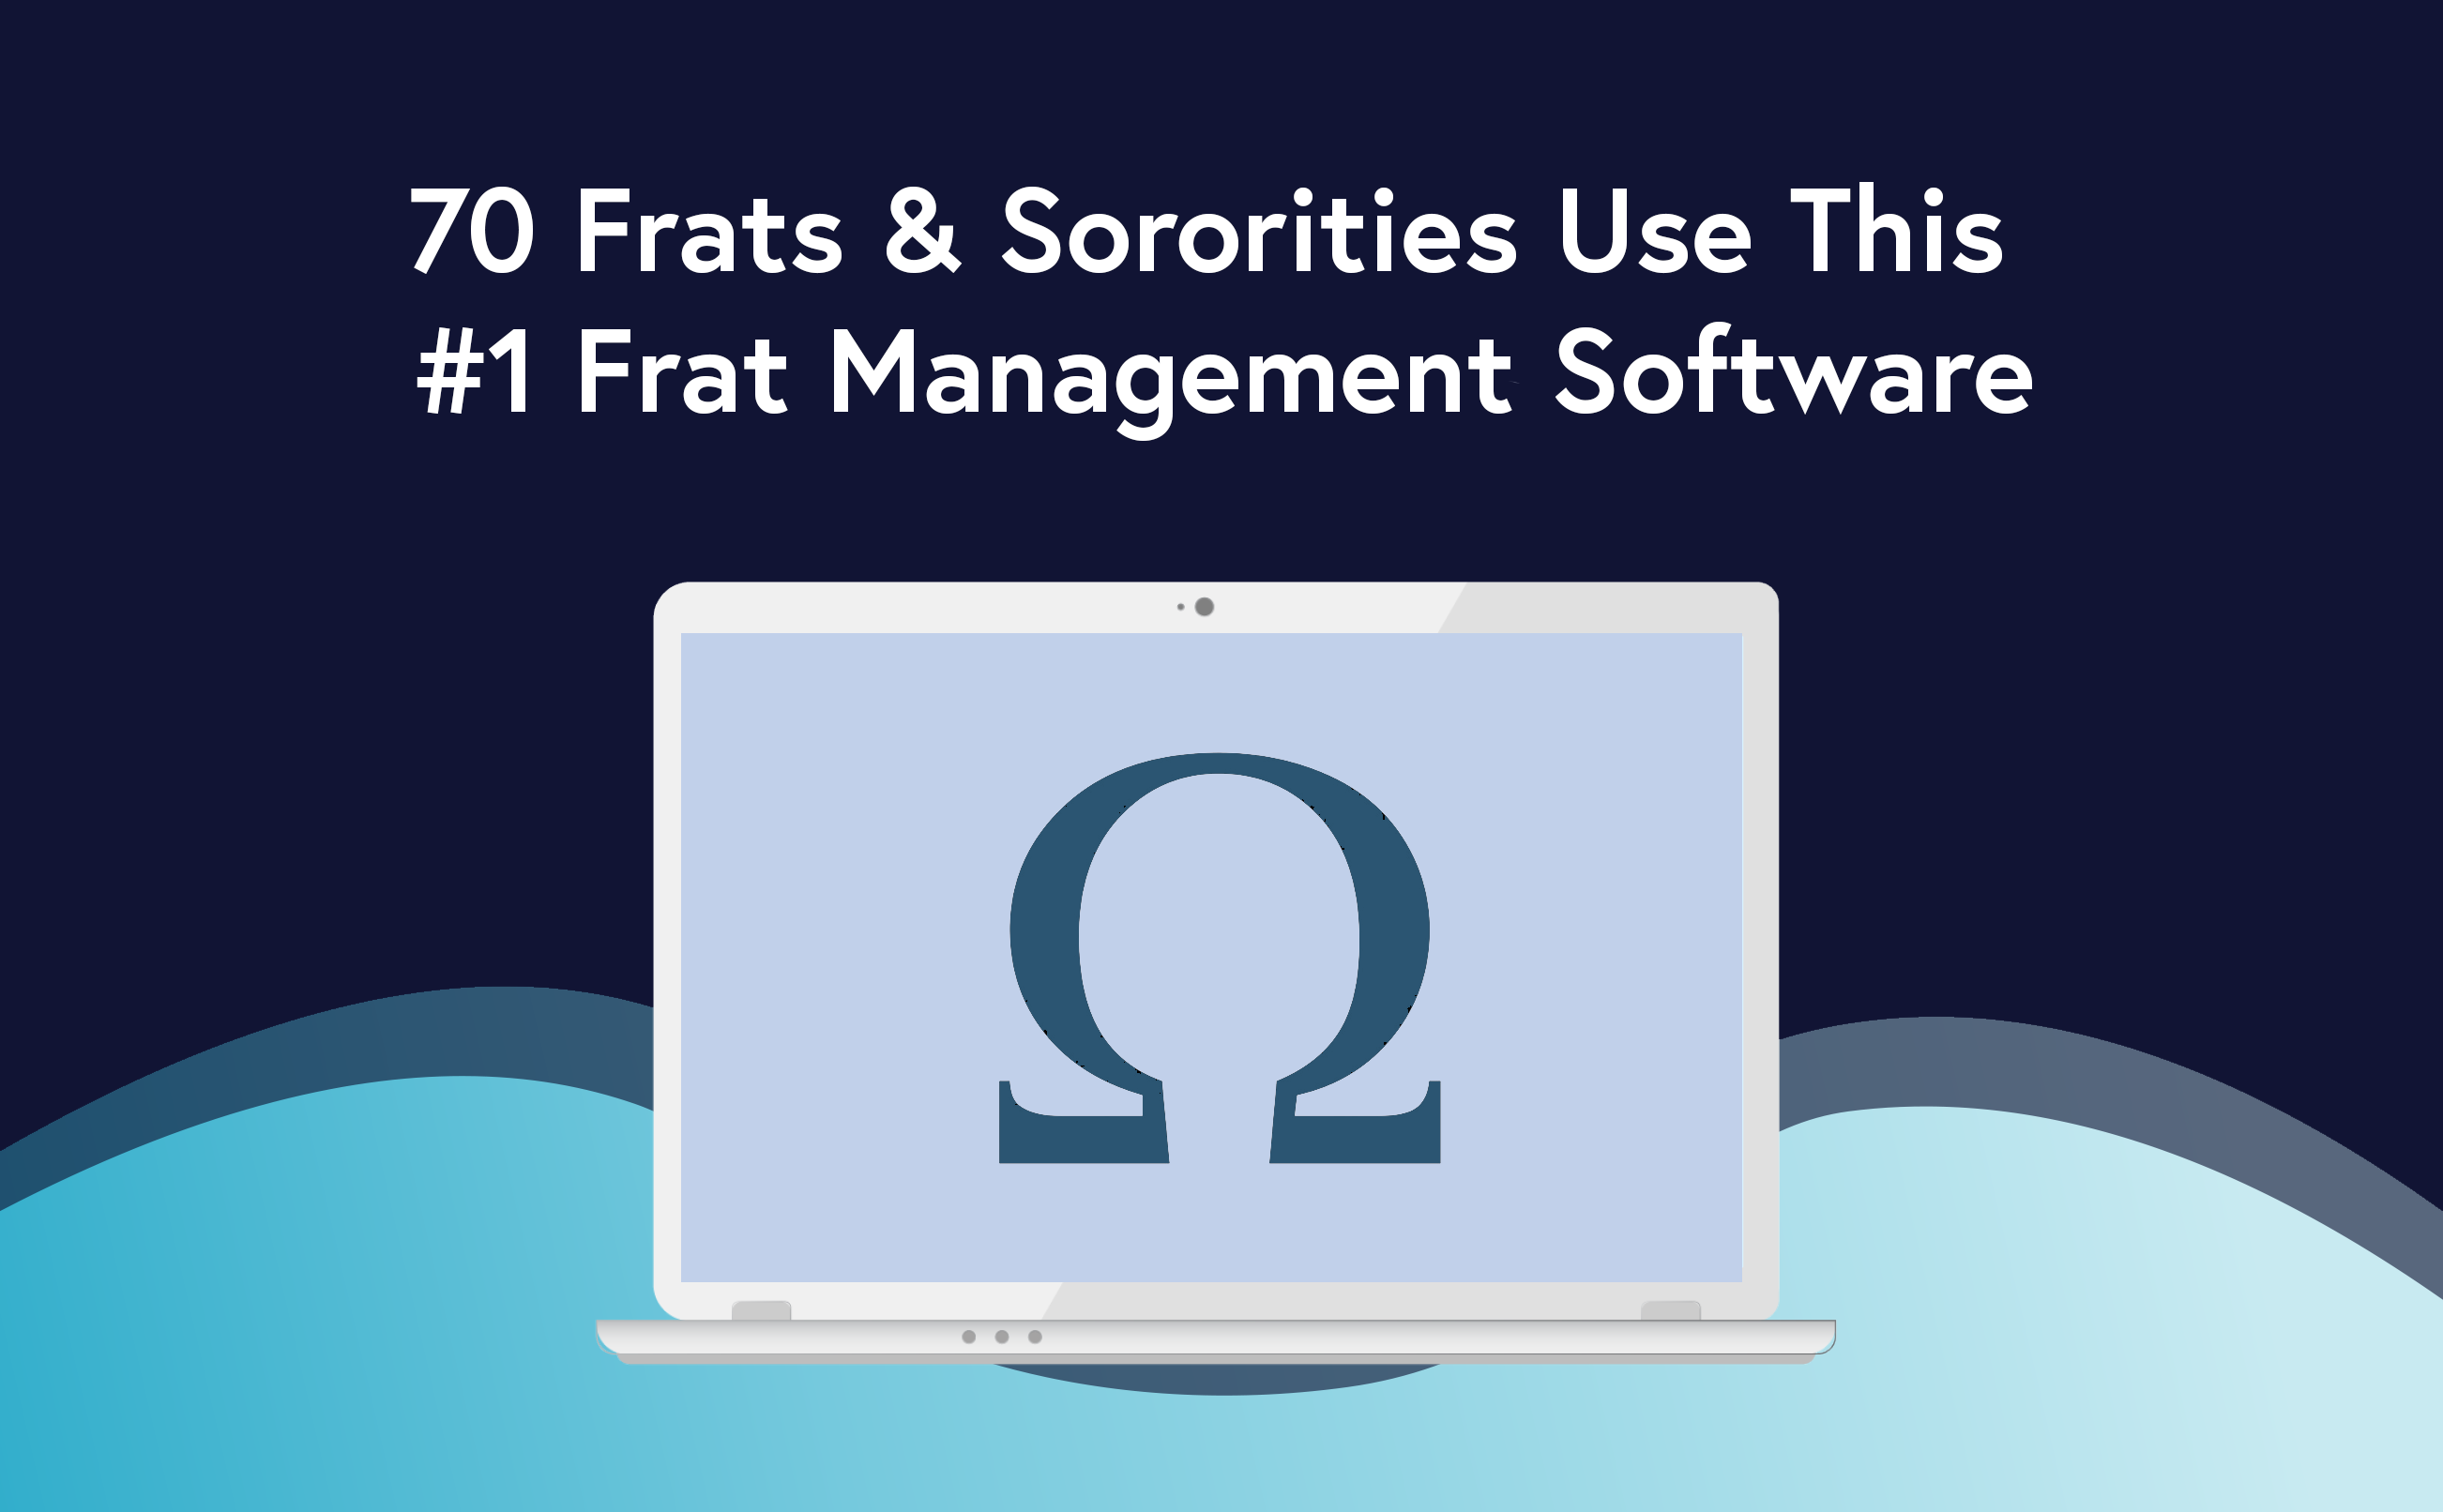 frat management software